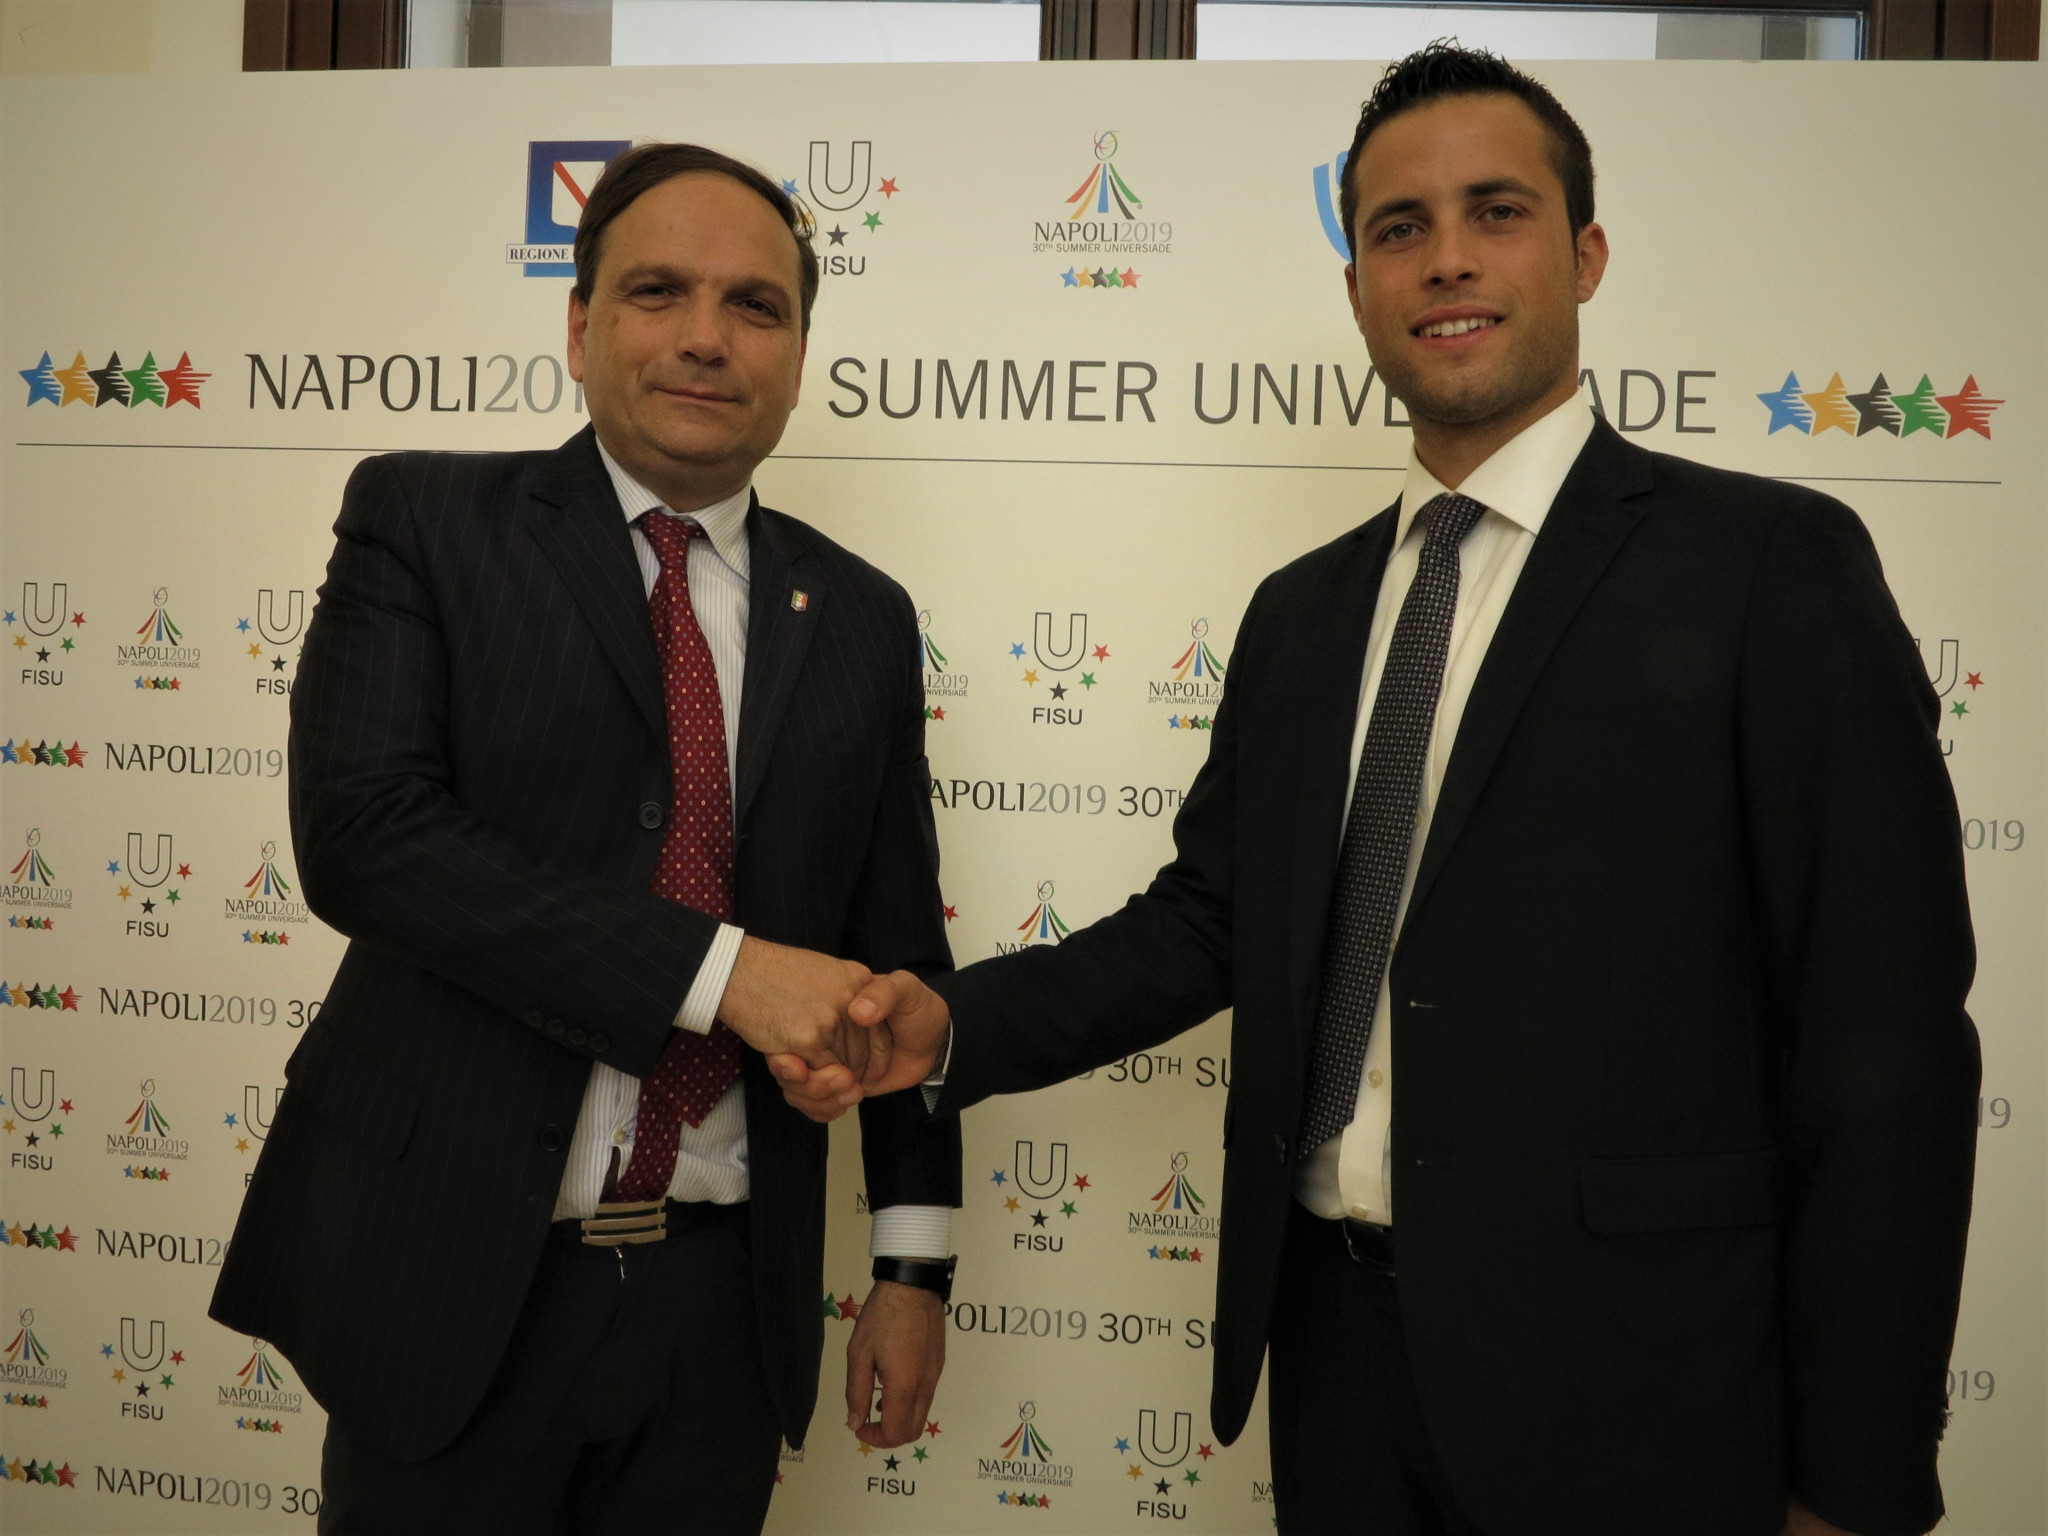 Naples 2019 Summer Universiade's Special Commissioner Gianluca Basile, left, at the signing of the Memorandum of Understanding with the Campania Youth Forum ©Napoli 2019